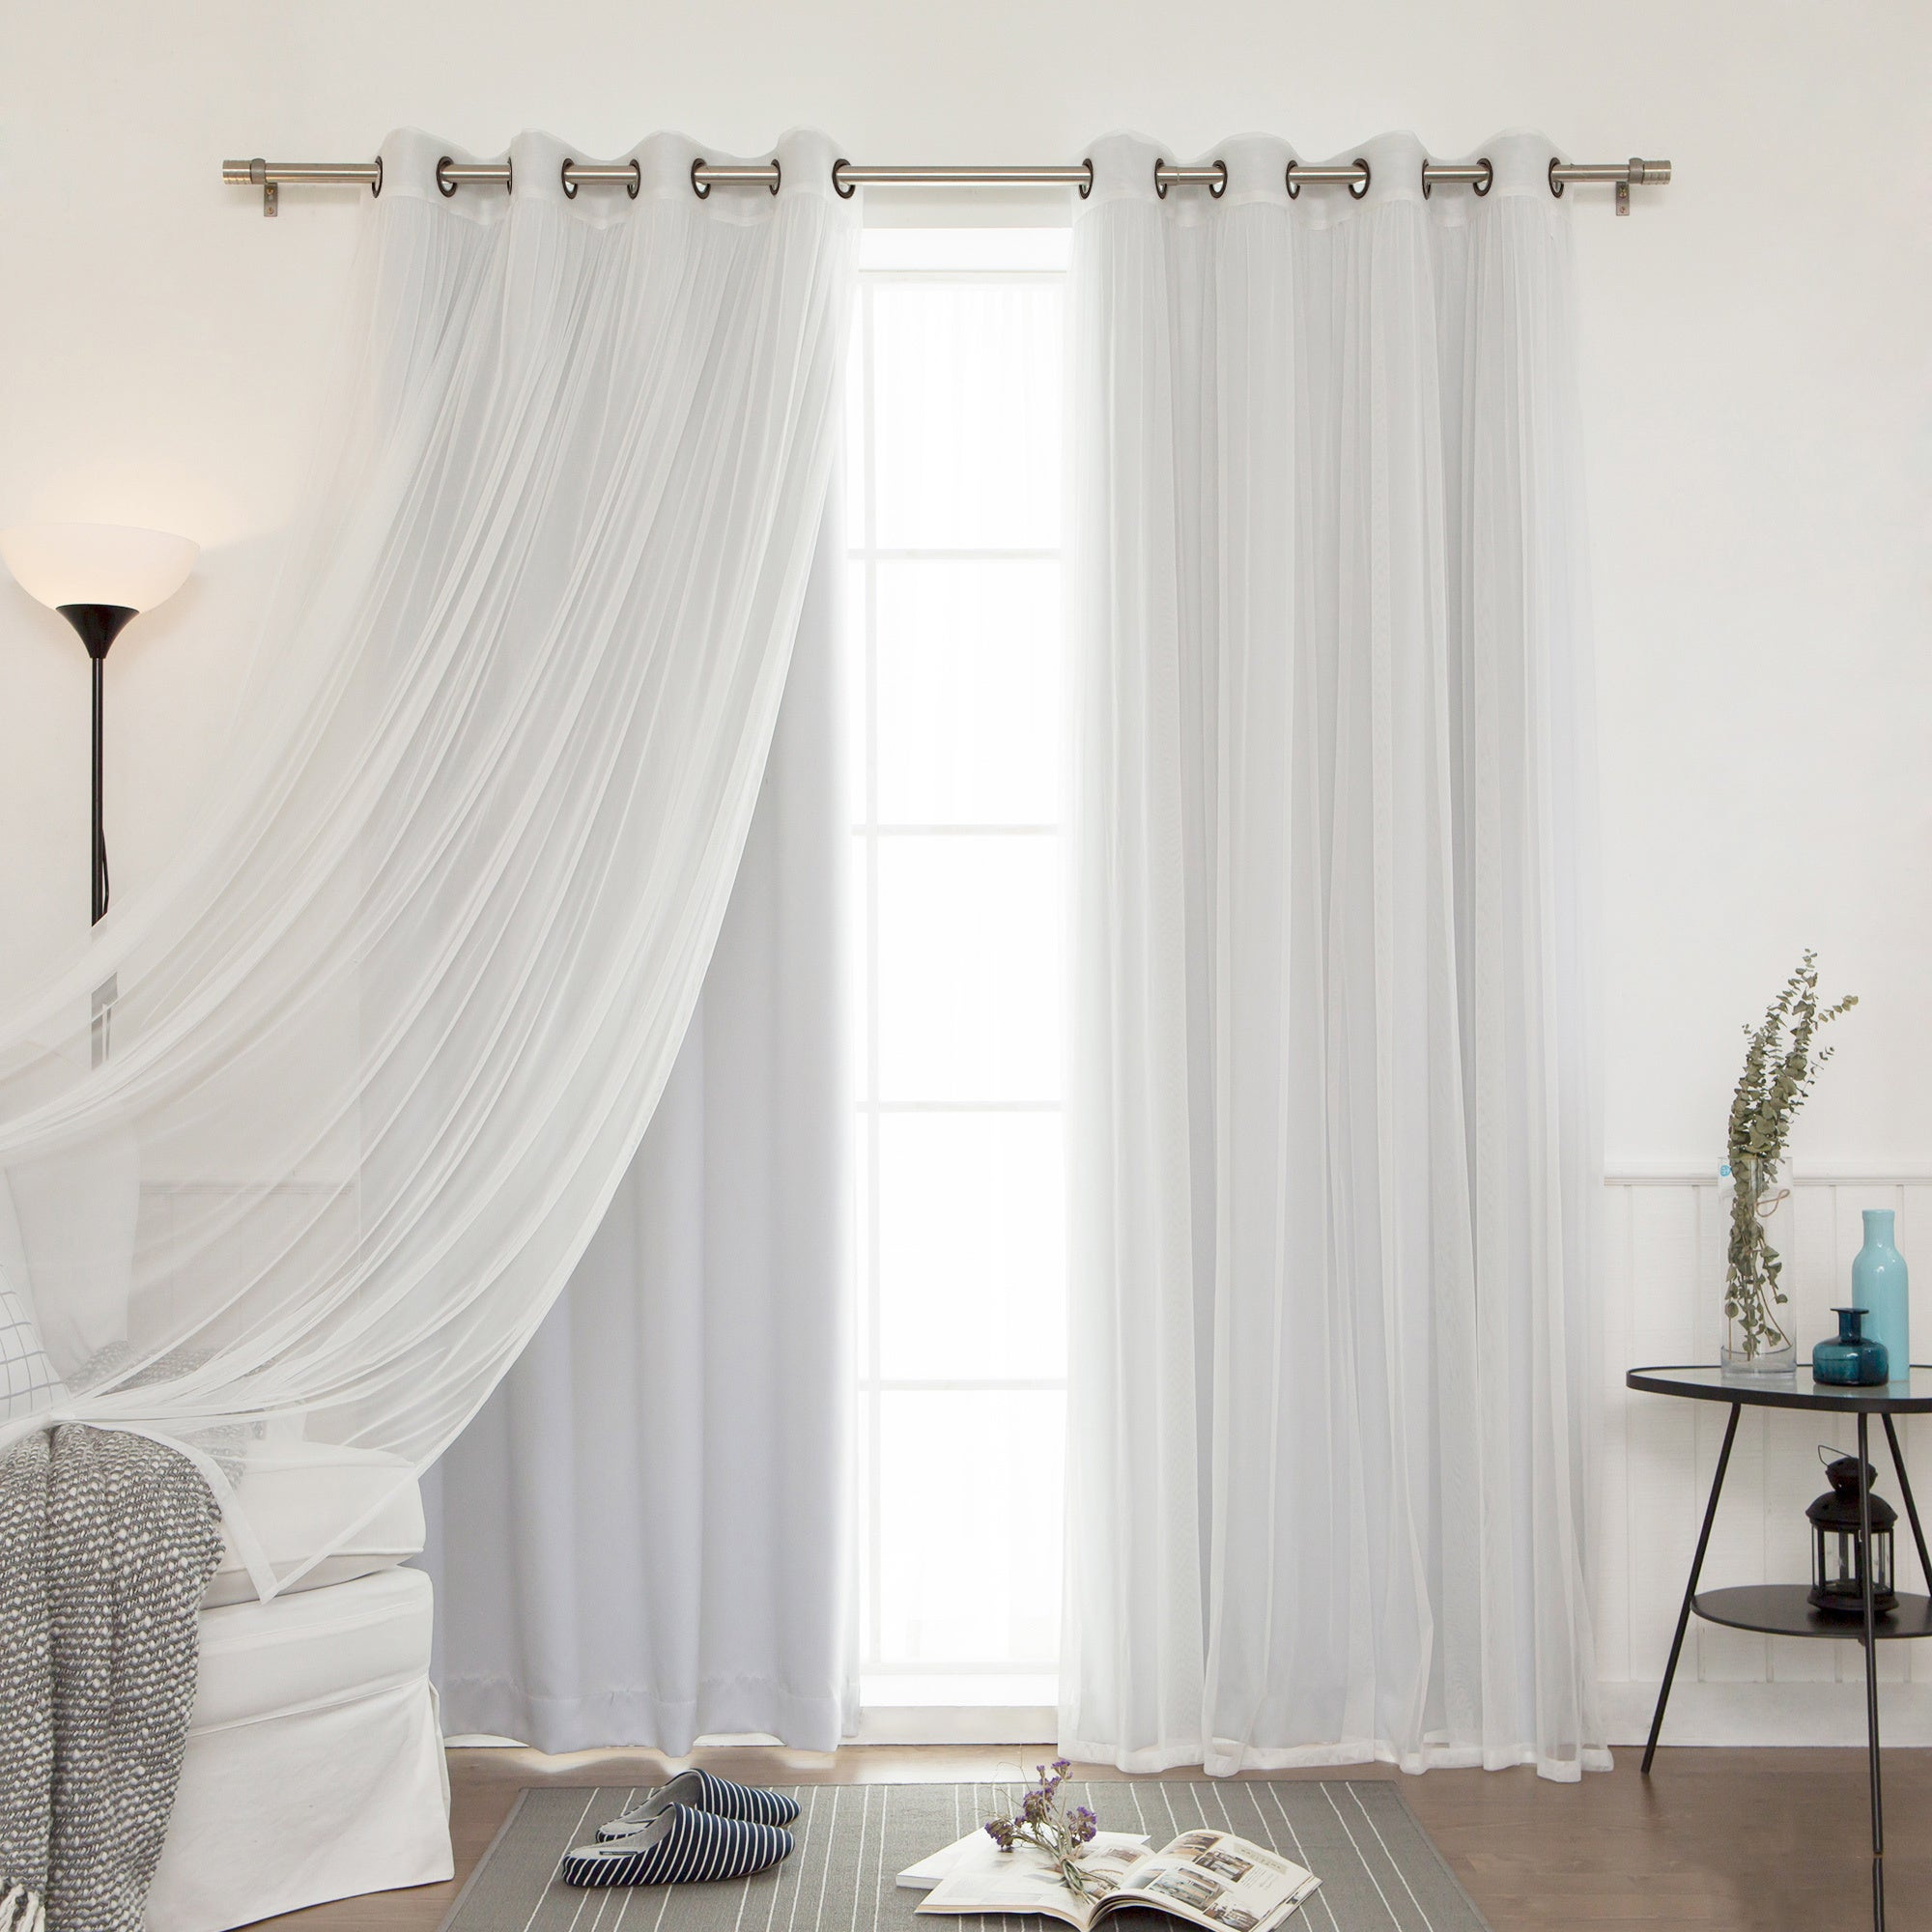 Aurora Home Mix & Match Blackout Tulle Lace Bronze Grommet 4 Piece Curtain  Panel Set in Mix & Match Blackout Tulle Lace Bronze Grommet Curtain Panel Sets (Image 1 of 20)